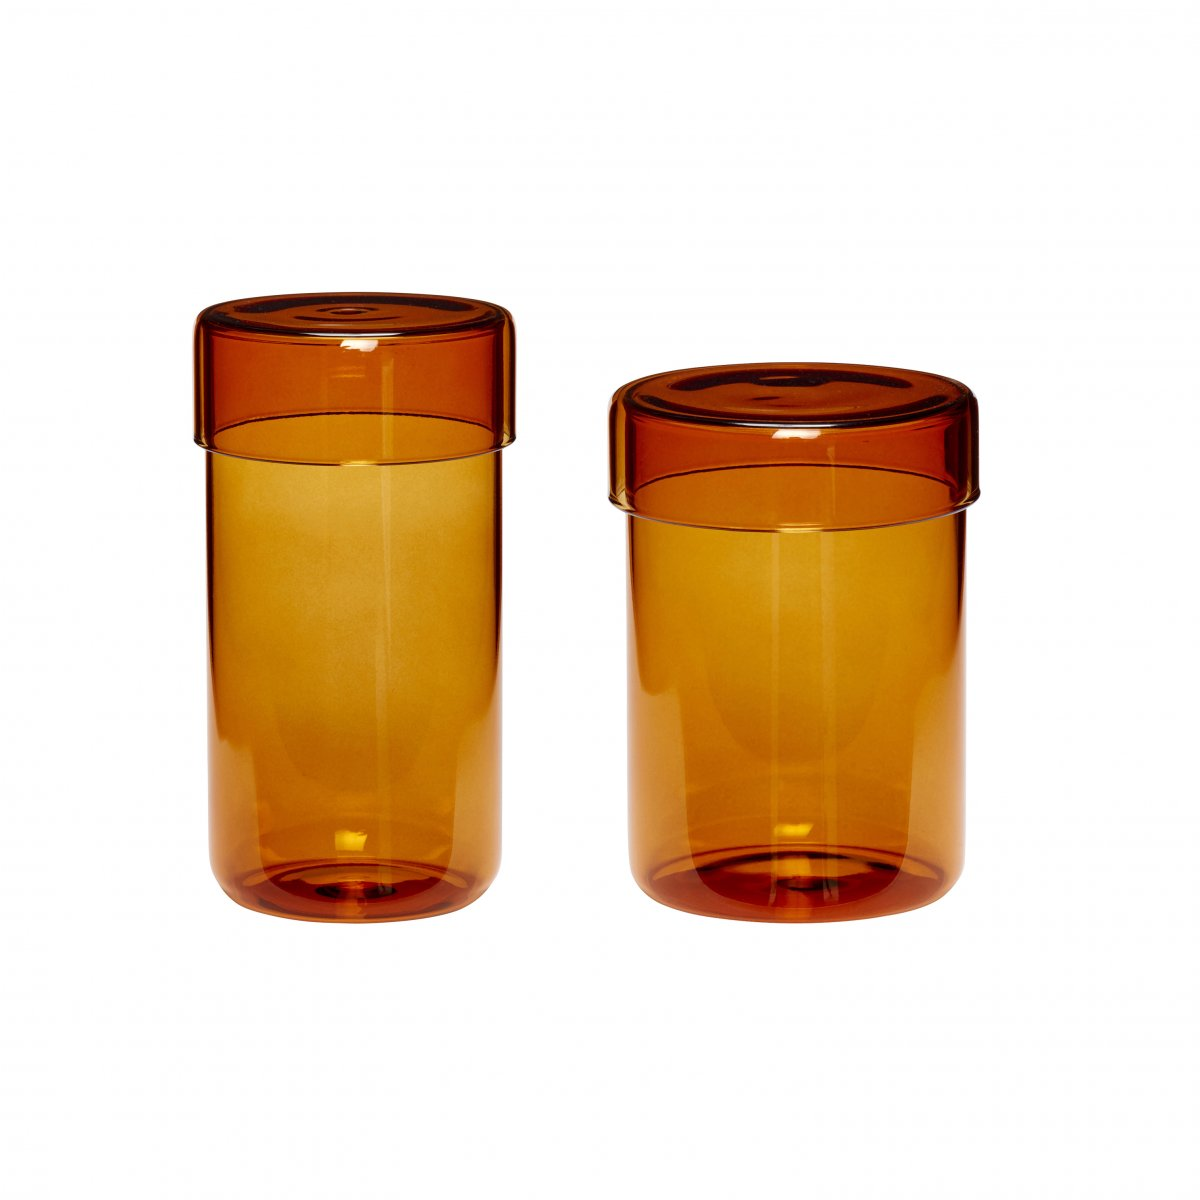 Set of 2 Tall Amber Glass Storage Jars with Lids